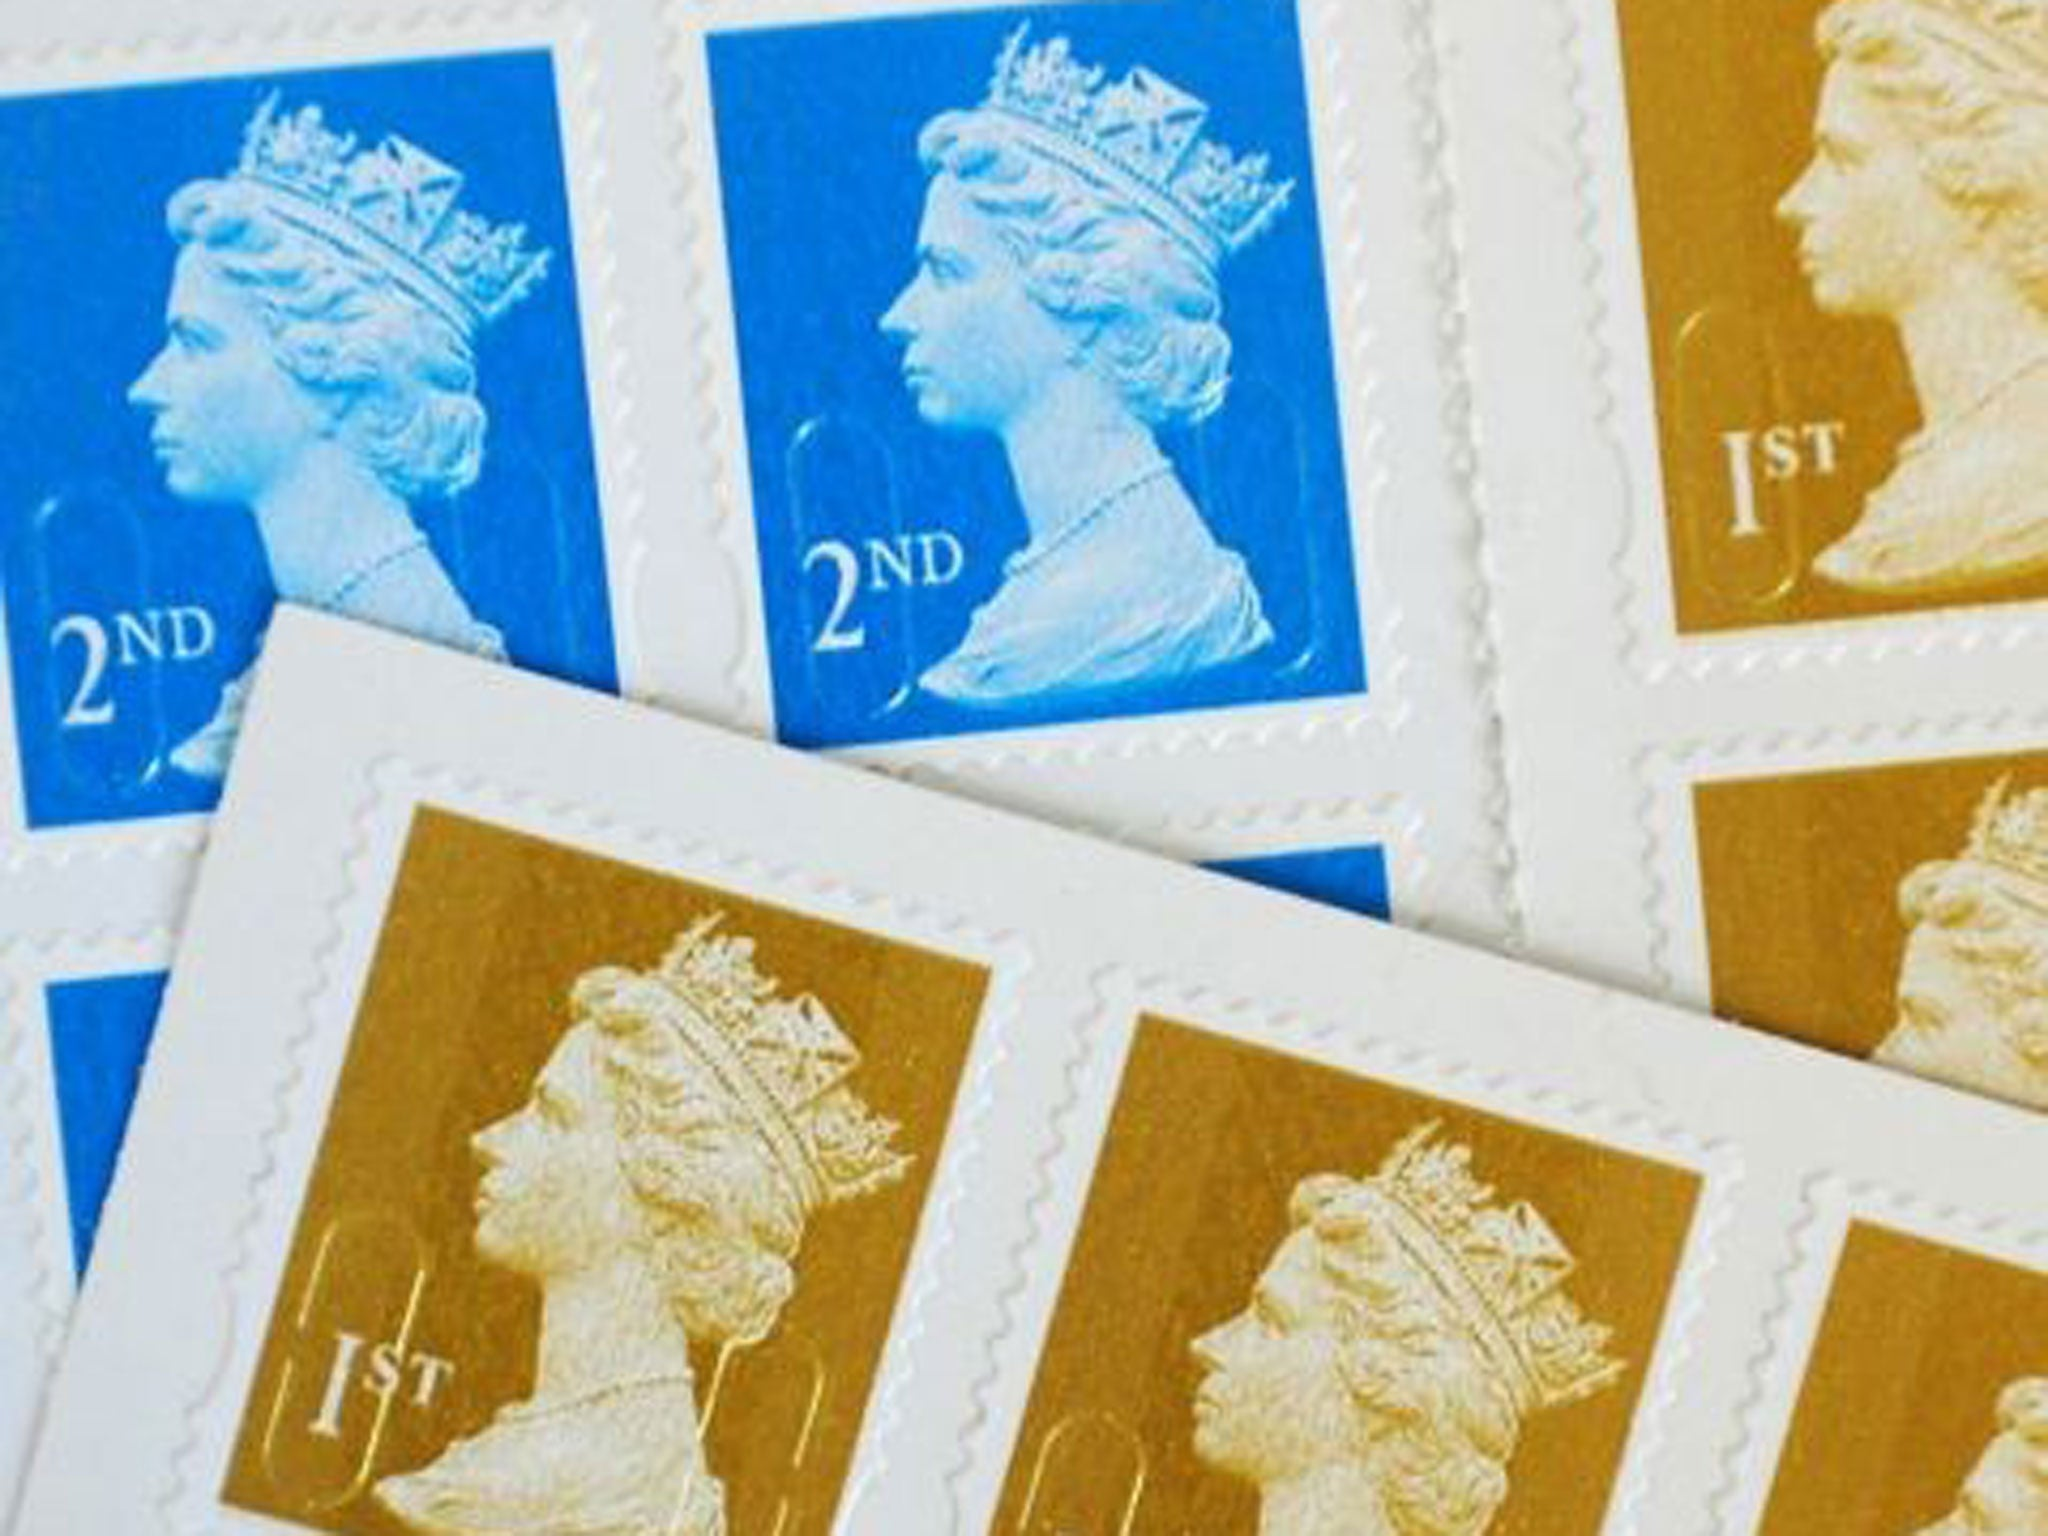 uk first and second class stamp prices to increase in march announces royal mail the independent. Black Bedroom Furniture Sets. Home Design Ideas